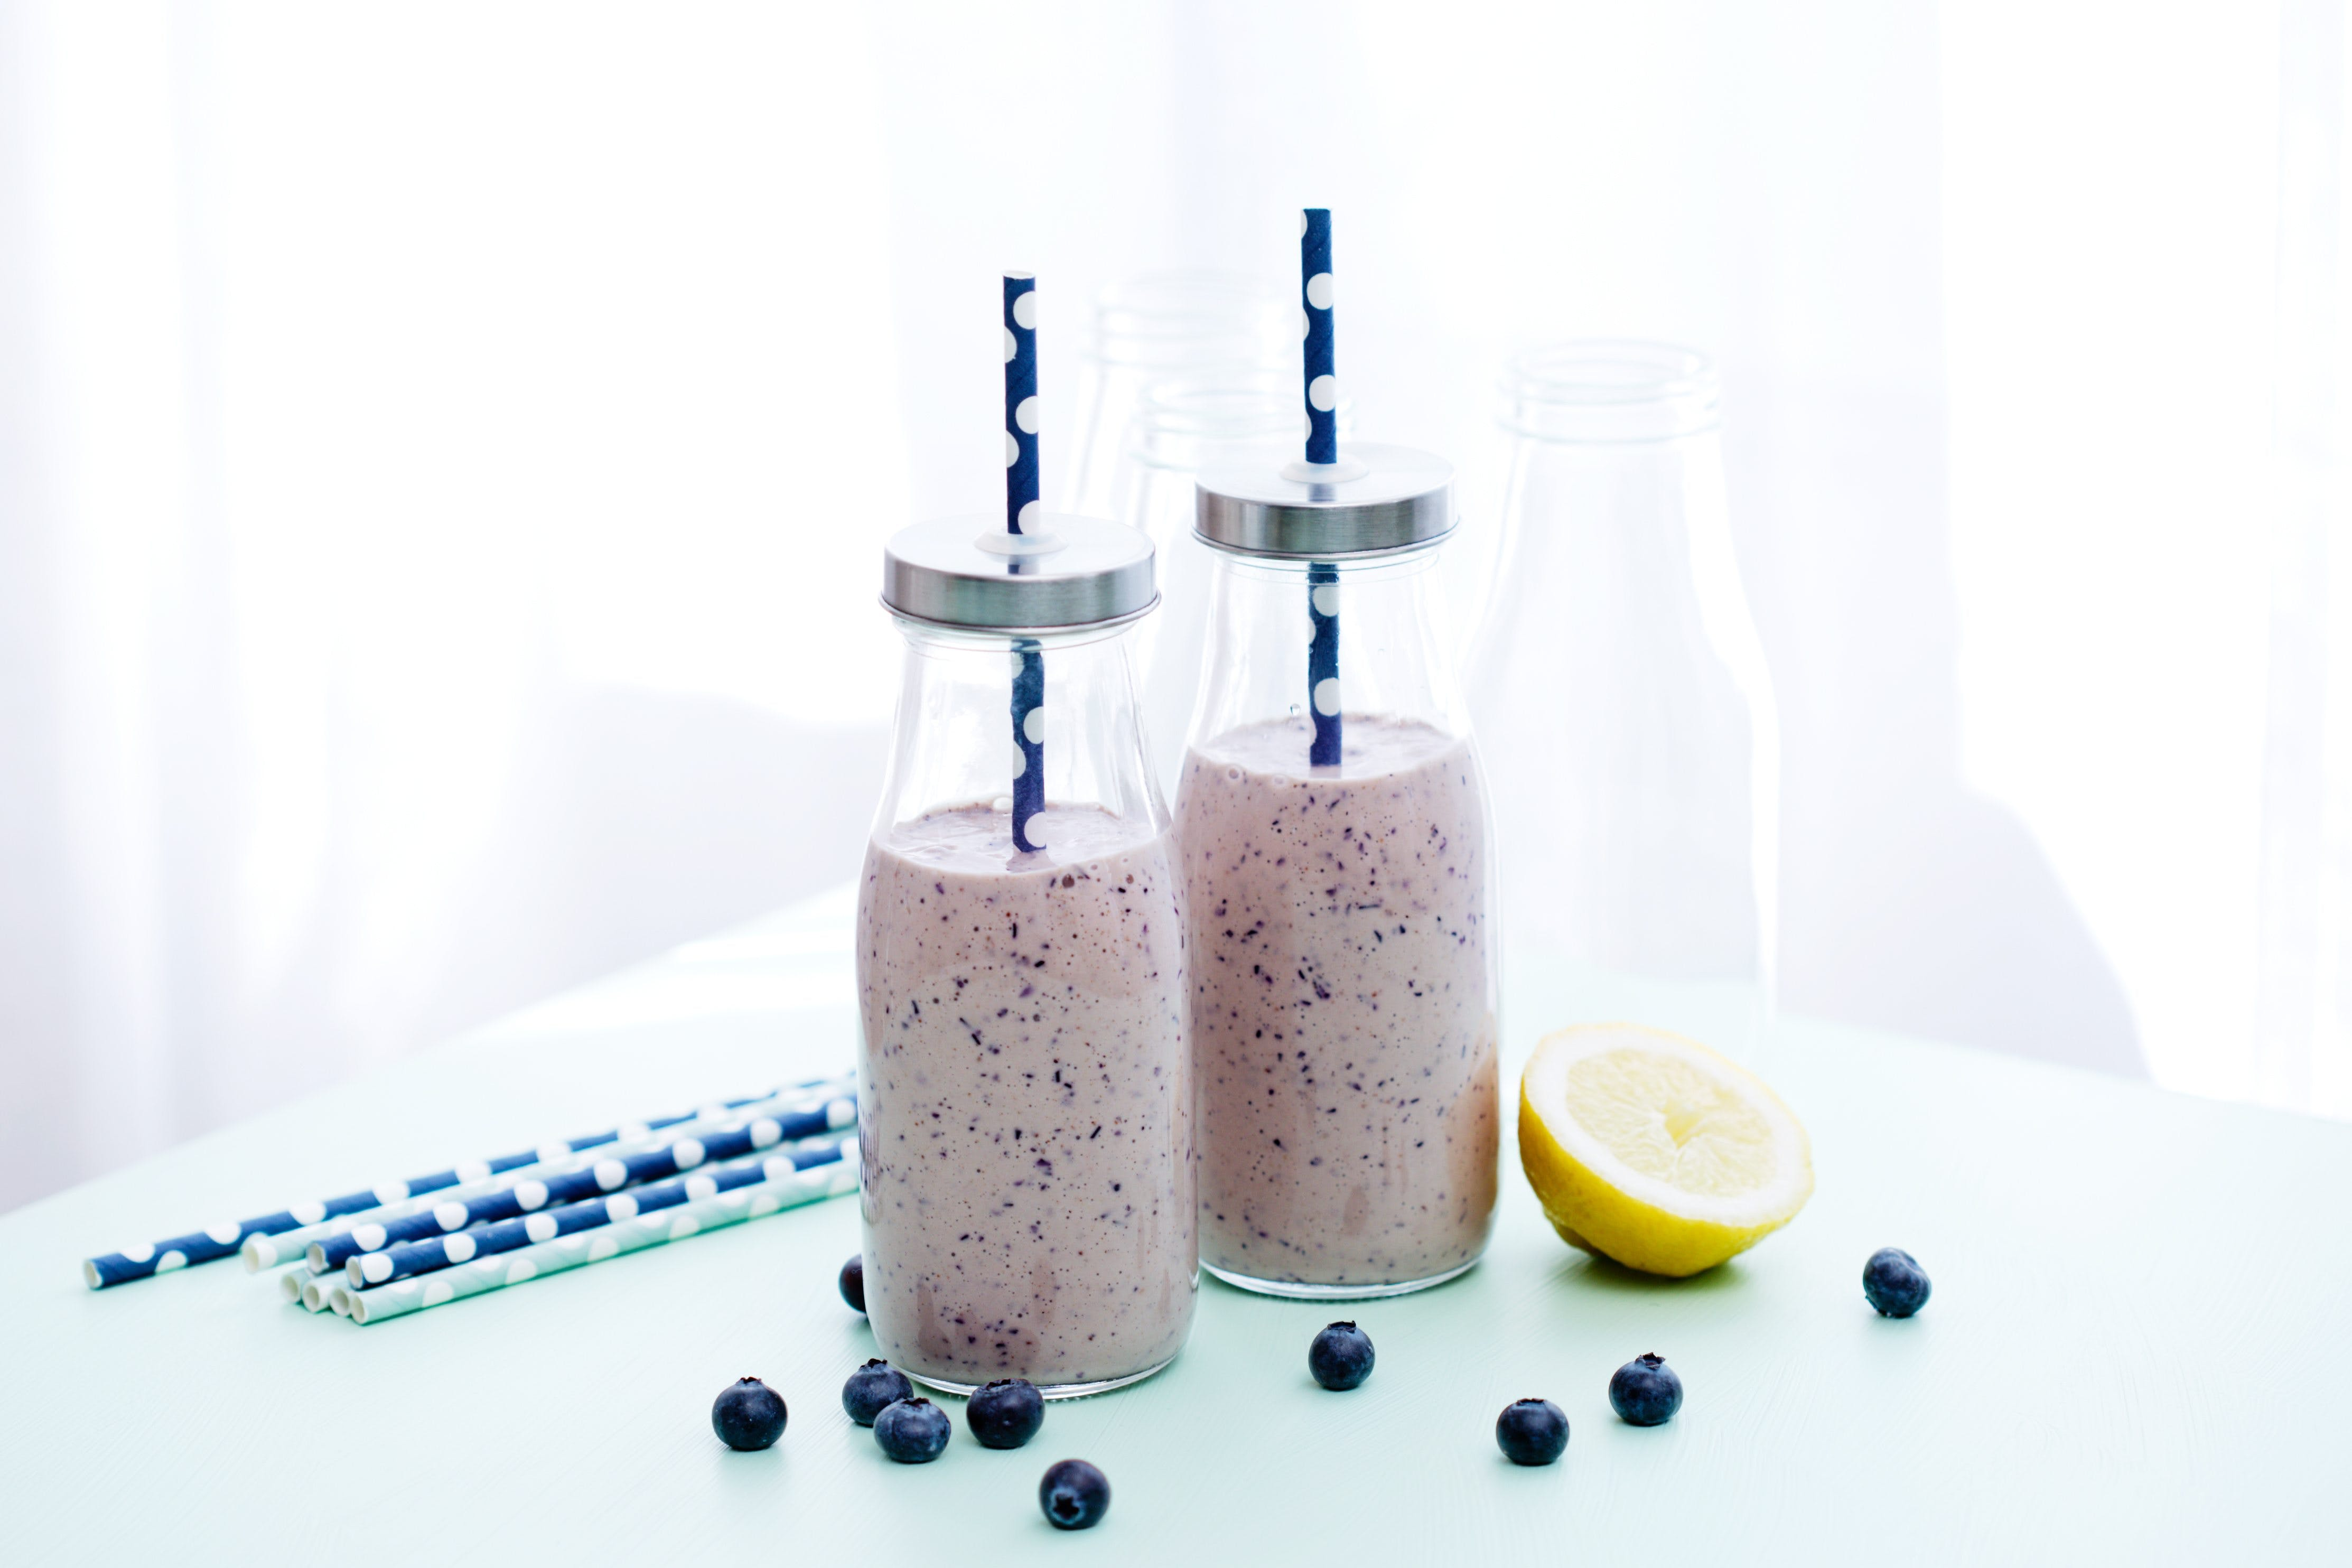 Low-carb blueberry smoothie